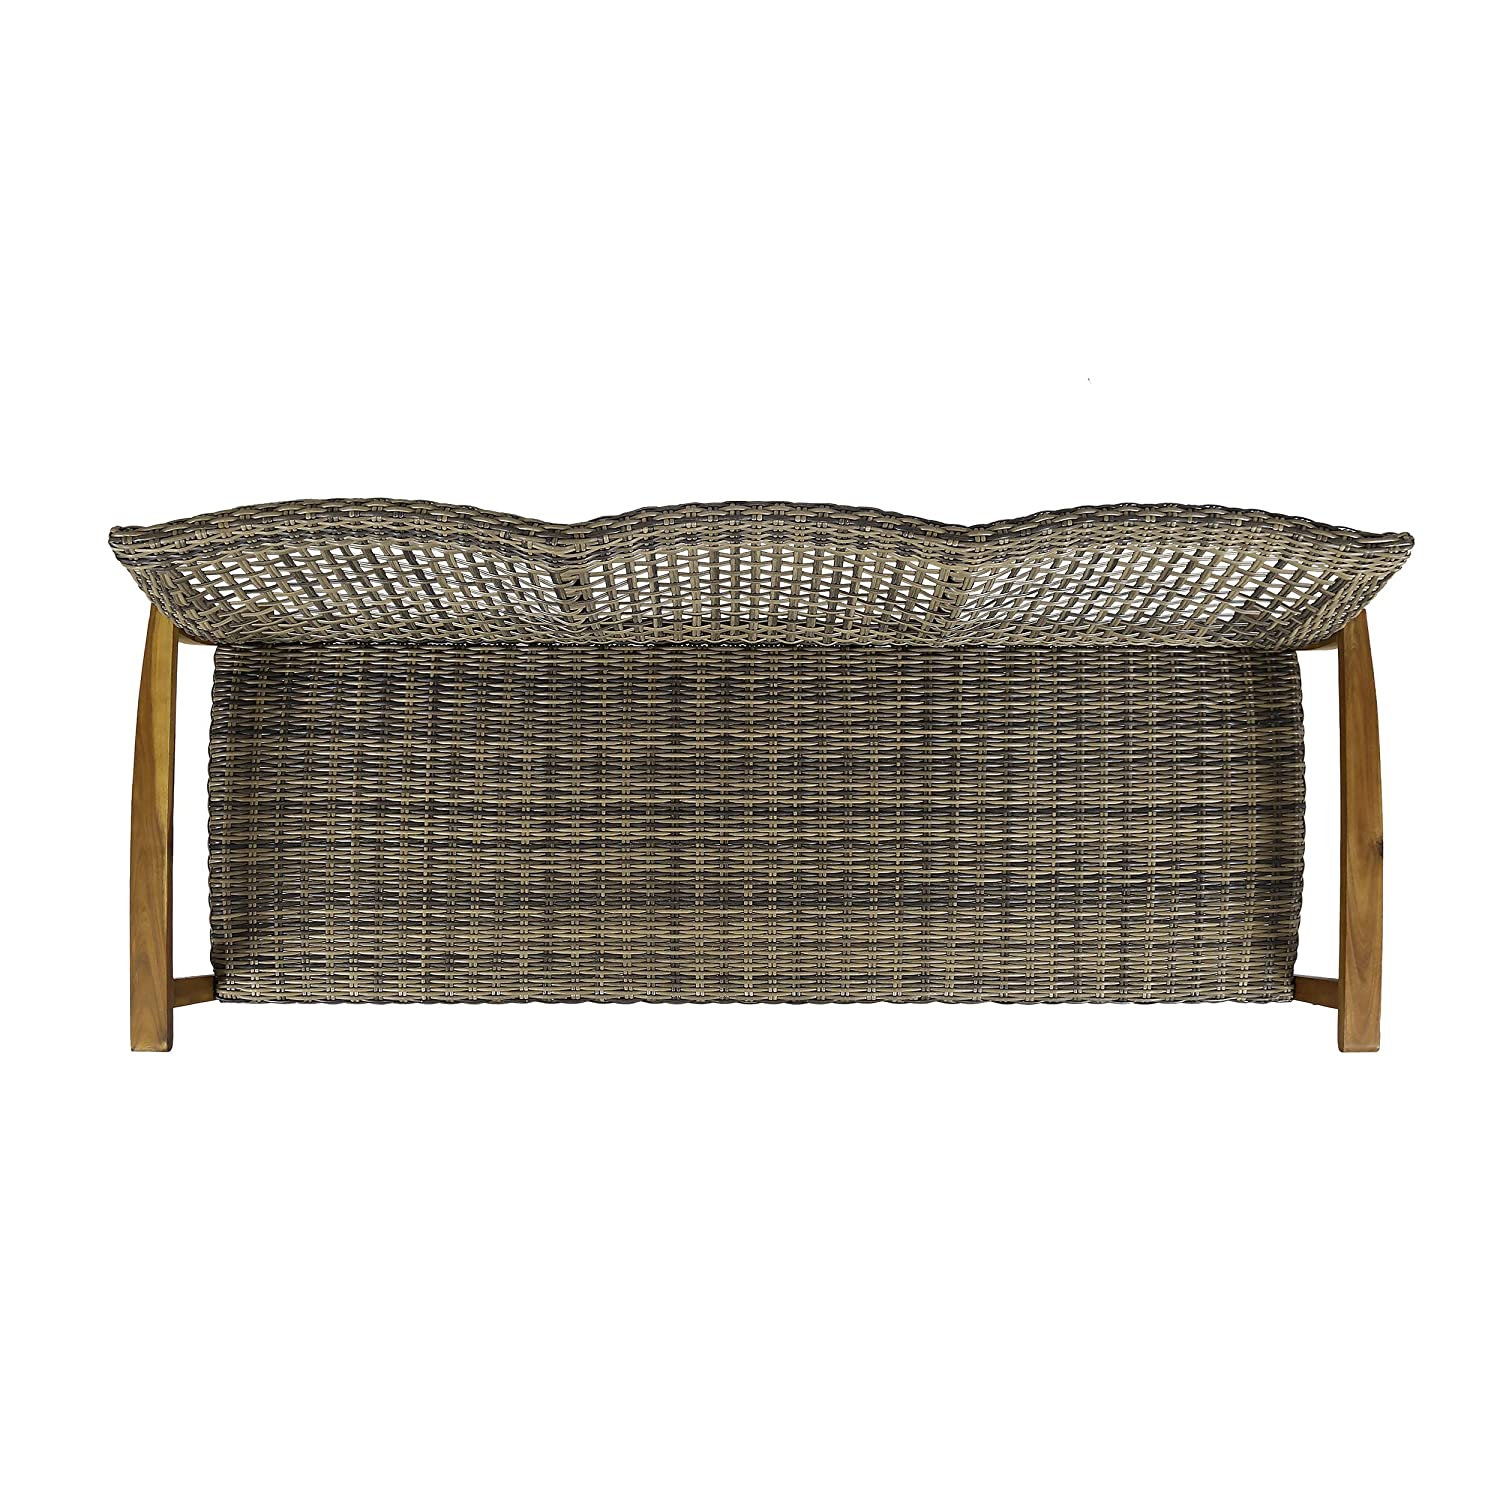 Christopher Knight Home 307797 Marcia Outdoor Wood Sofa, Wicker, 75.50 x 31.00 x 31.50, Gray, Natural Stained Finish